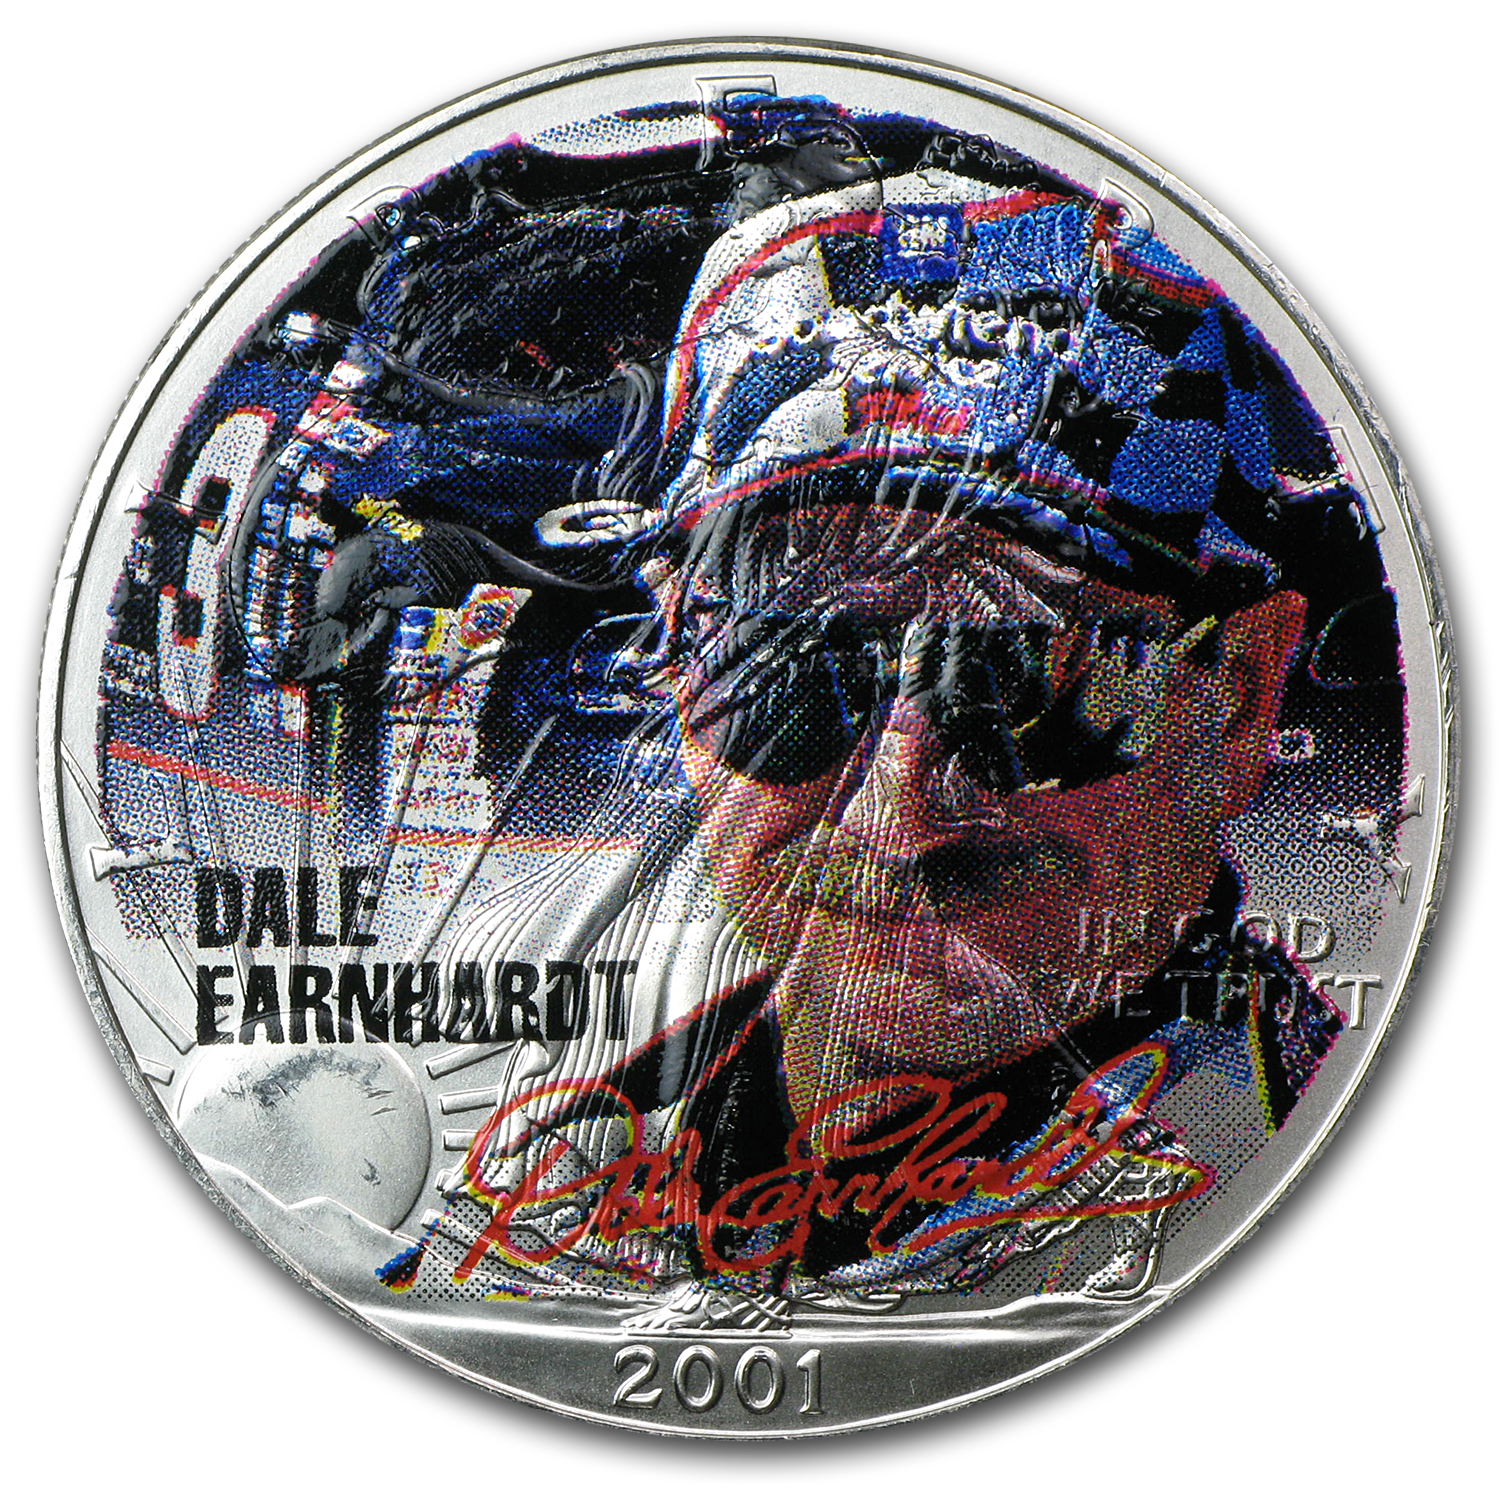 1 oz Silver American Eagle (Colorized, Dale Earnhardt)